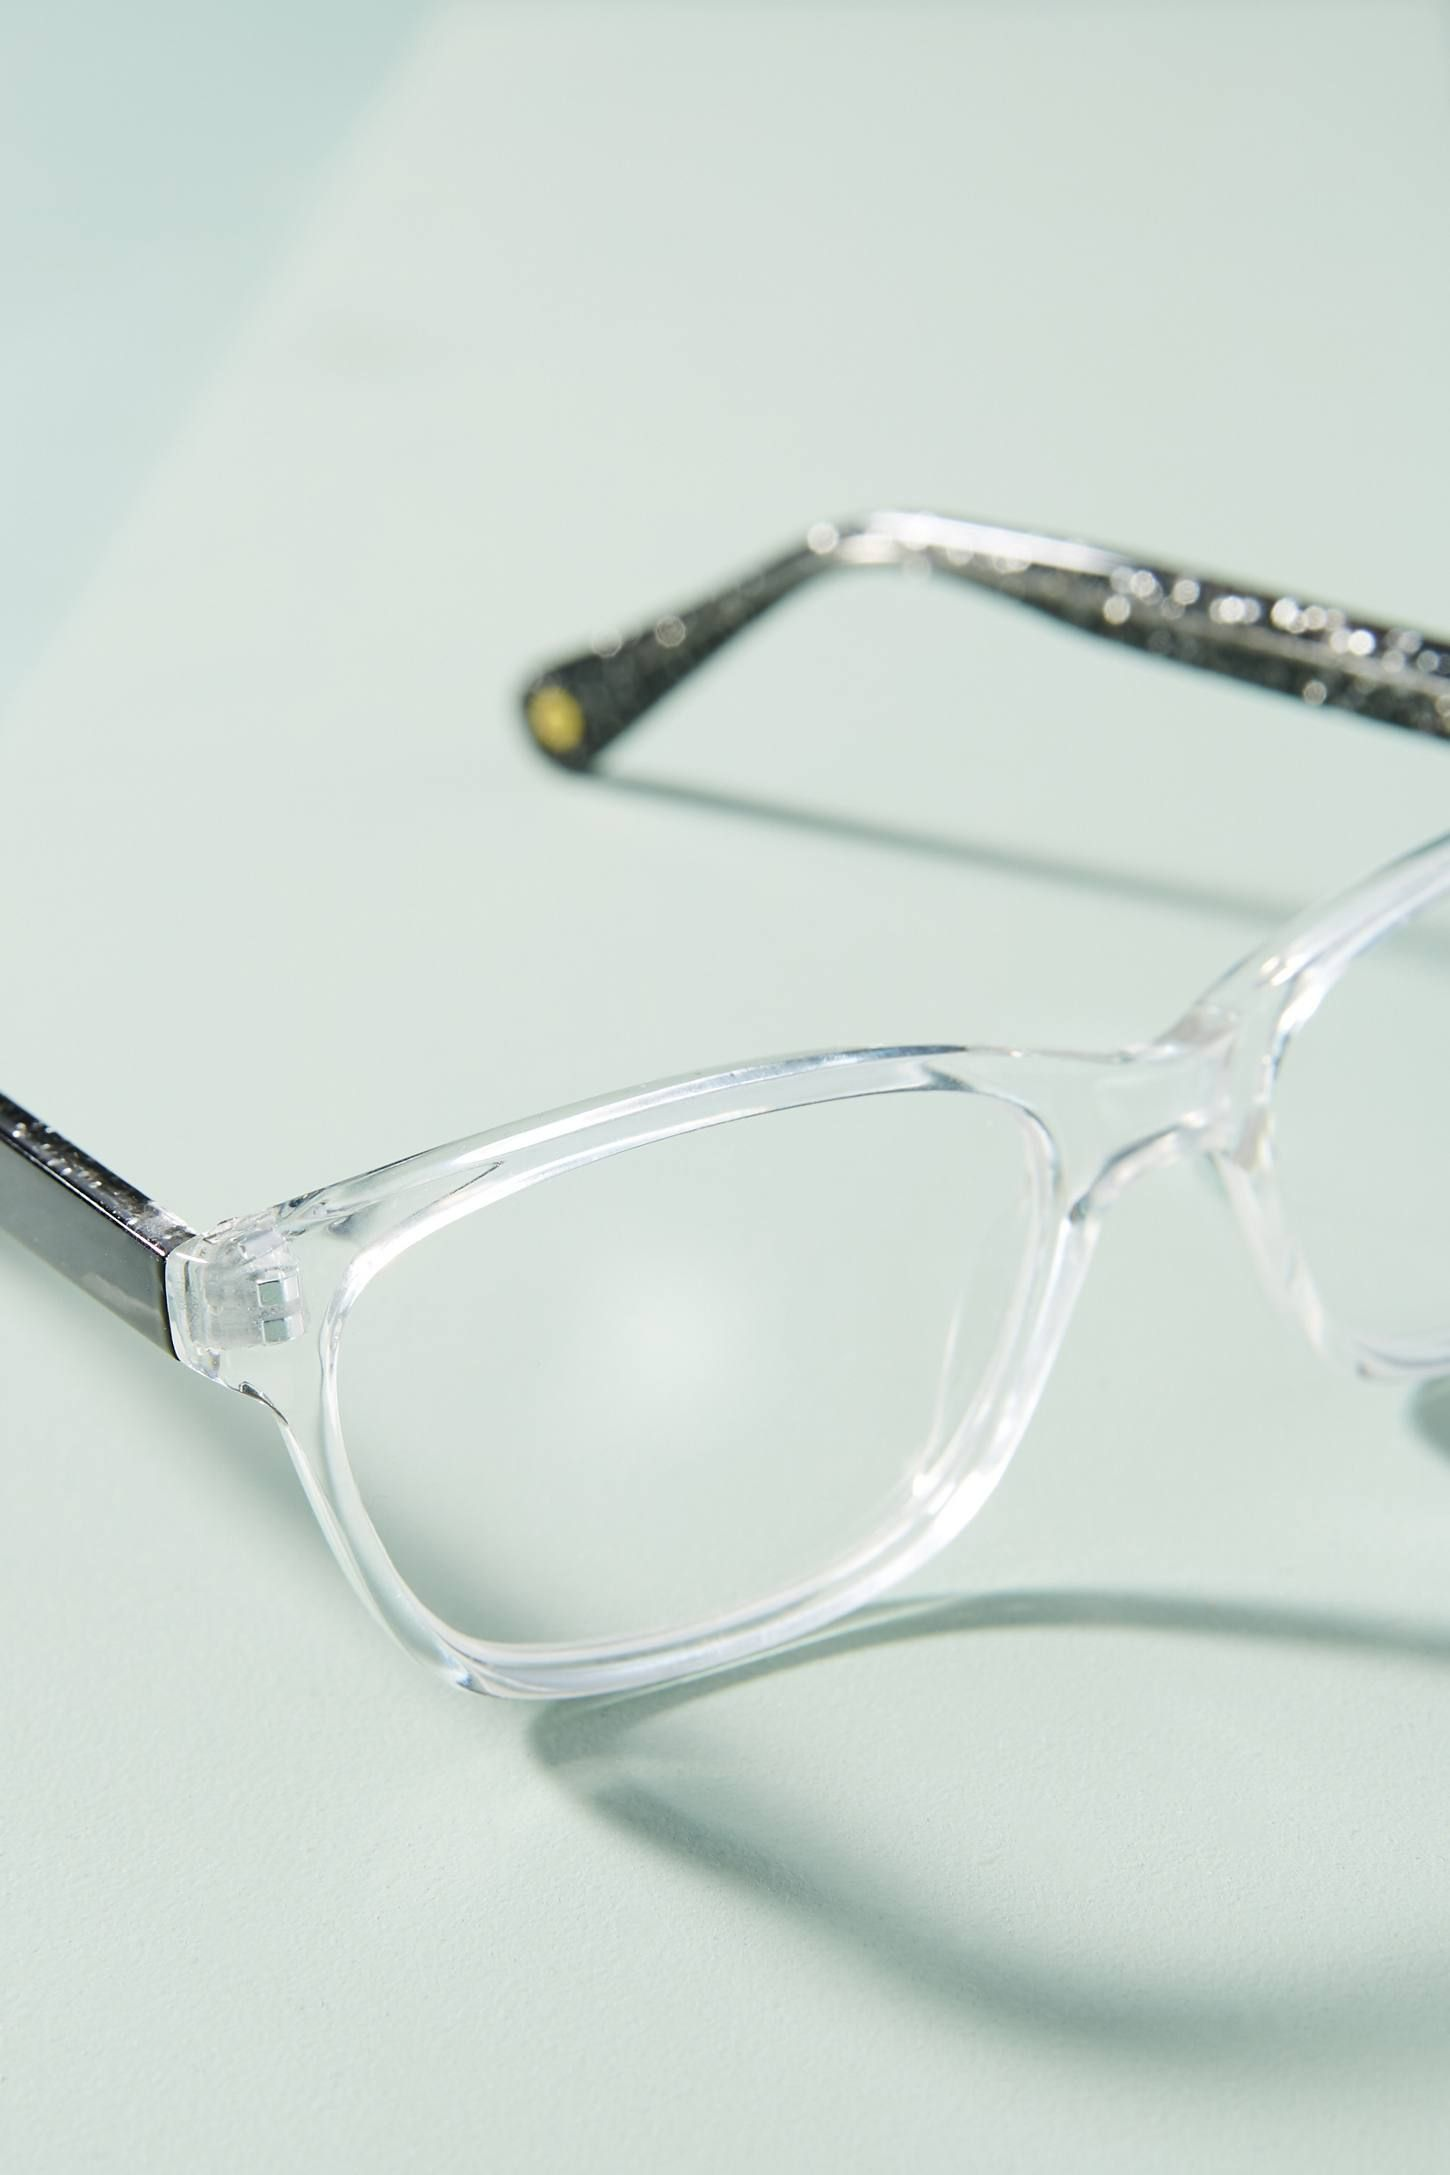 5c8562ad29 Shop the Sparkle Reading Glasses and more Anthropologie at Anthropologie  today. Read customer reviews